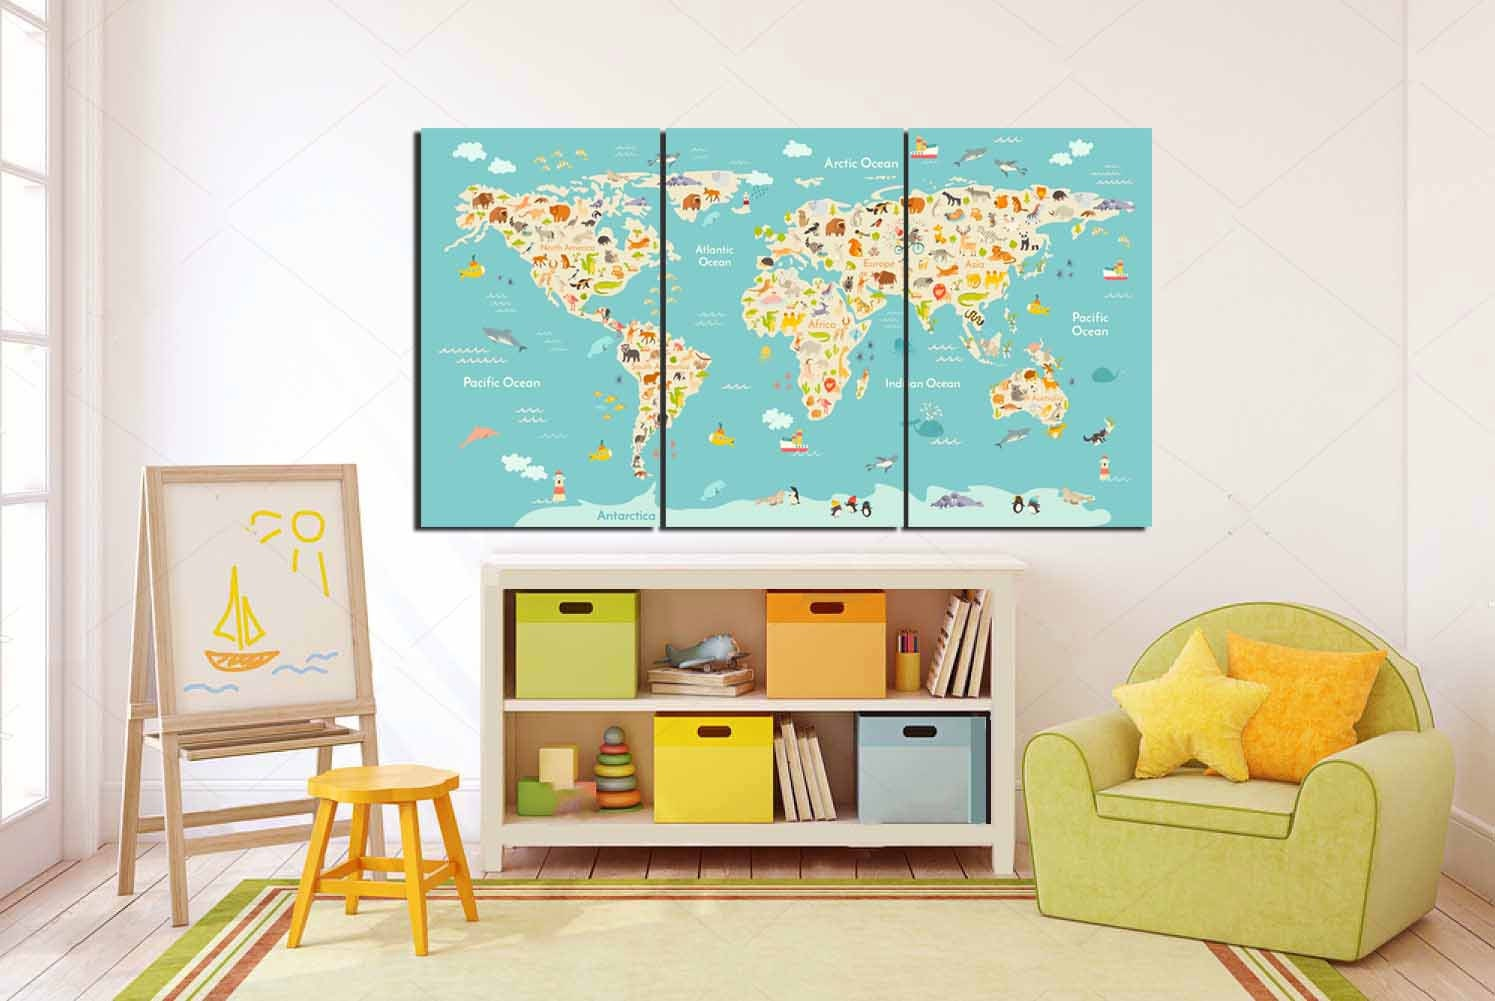 Kids Room World MapLarge Animal Map Kids Room Art Kids Wall Art - World map for kids room